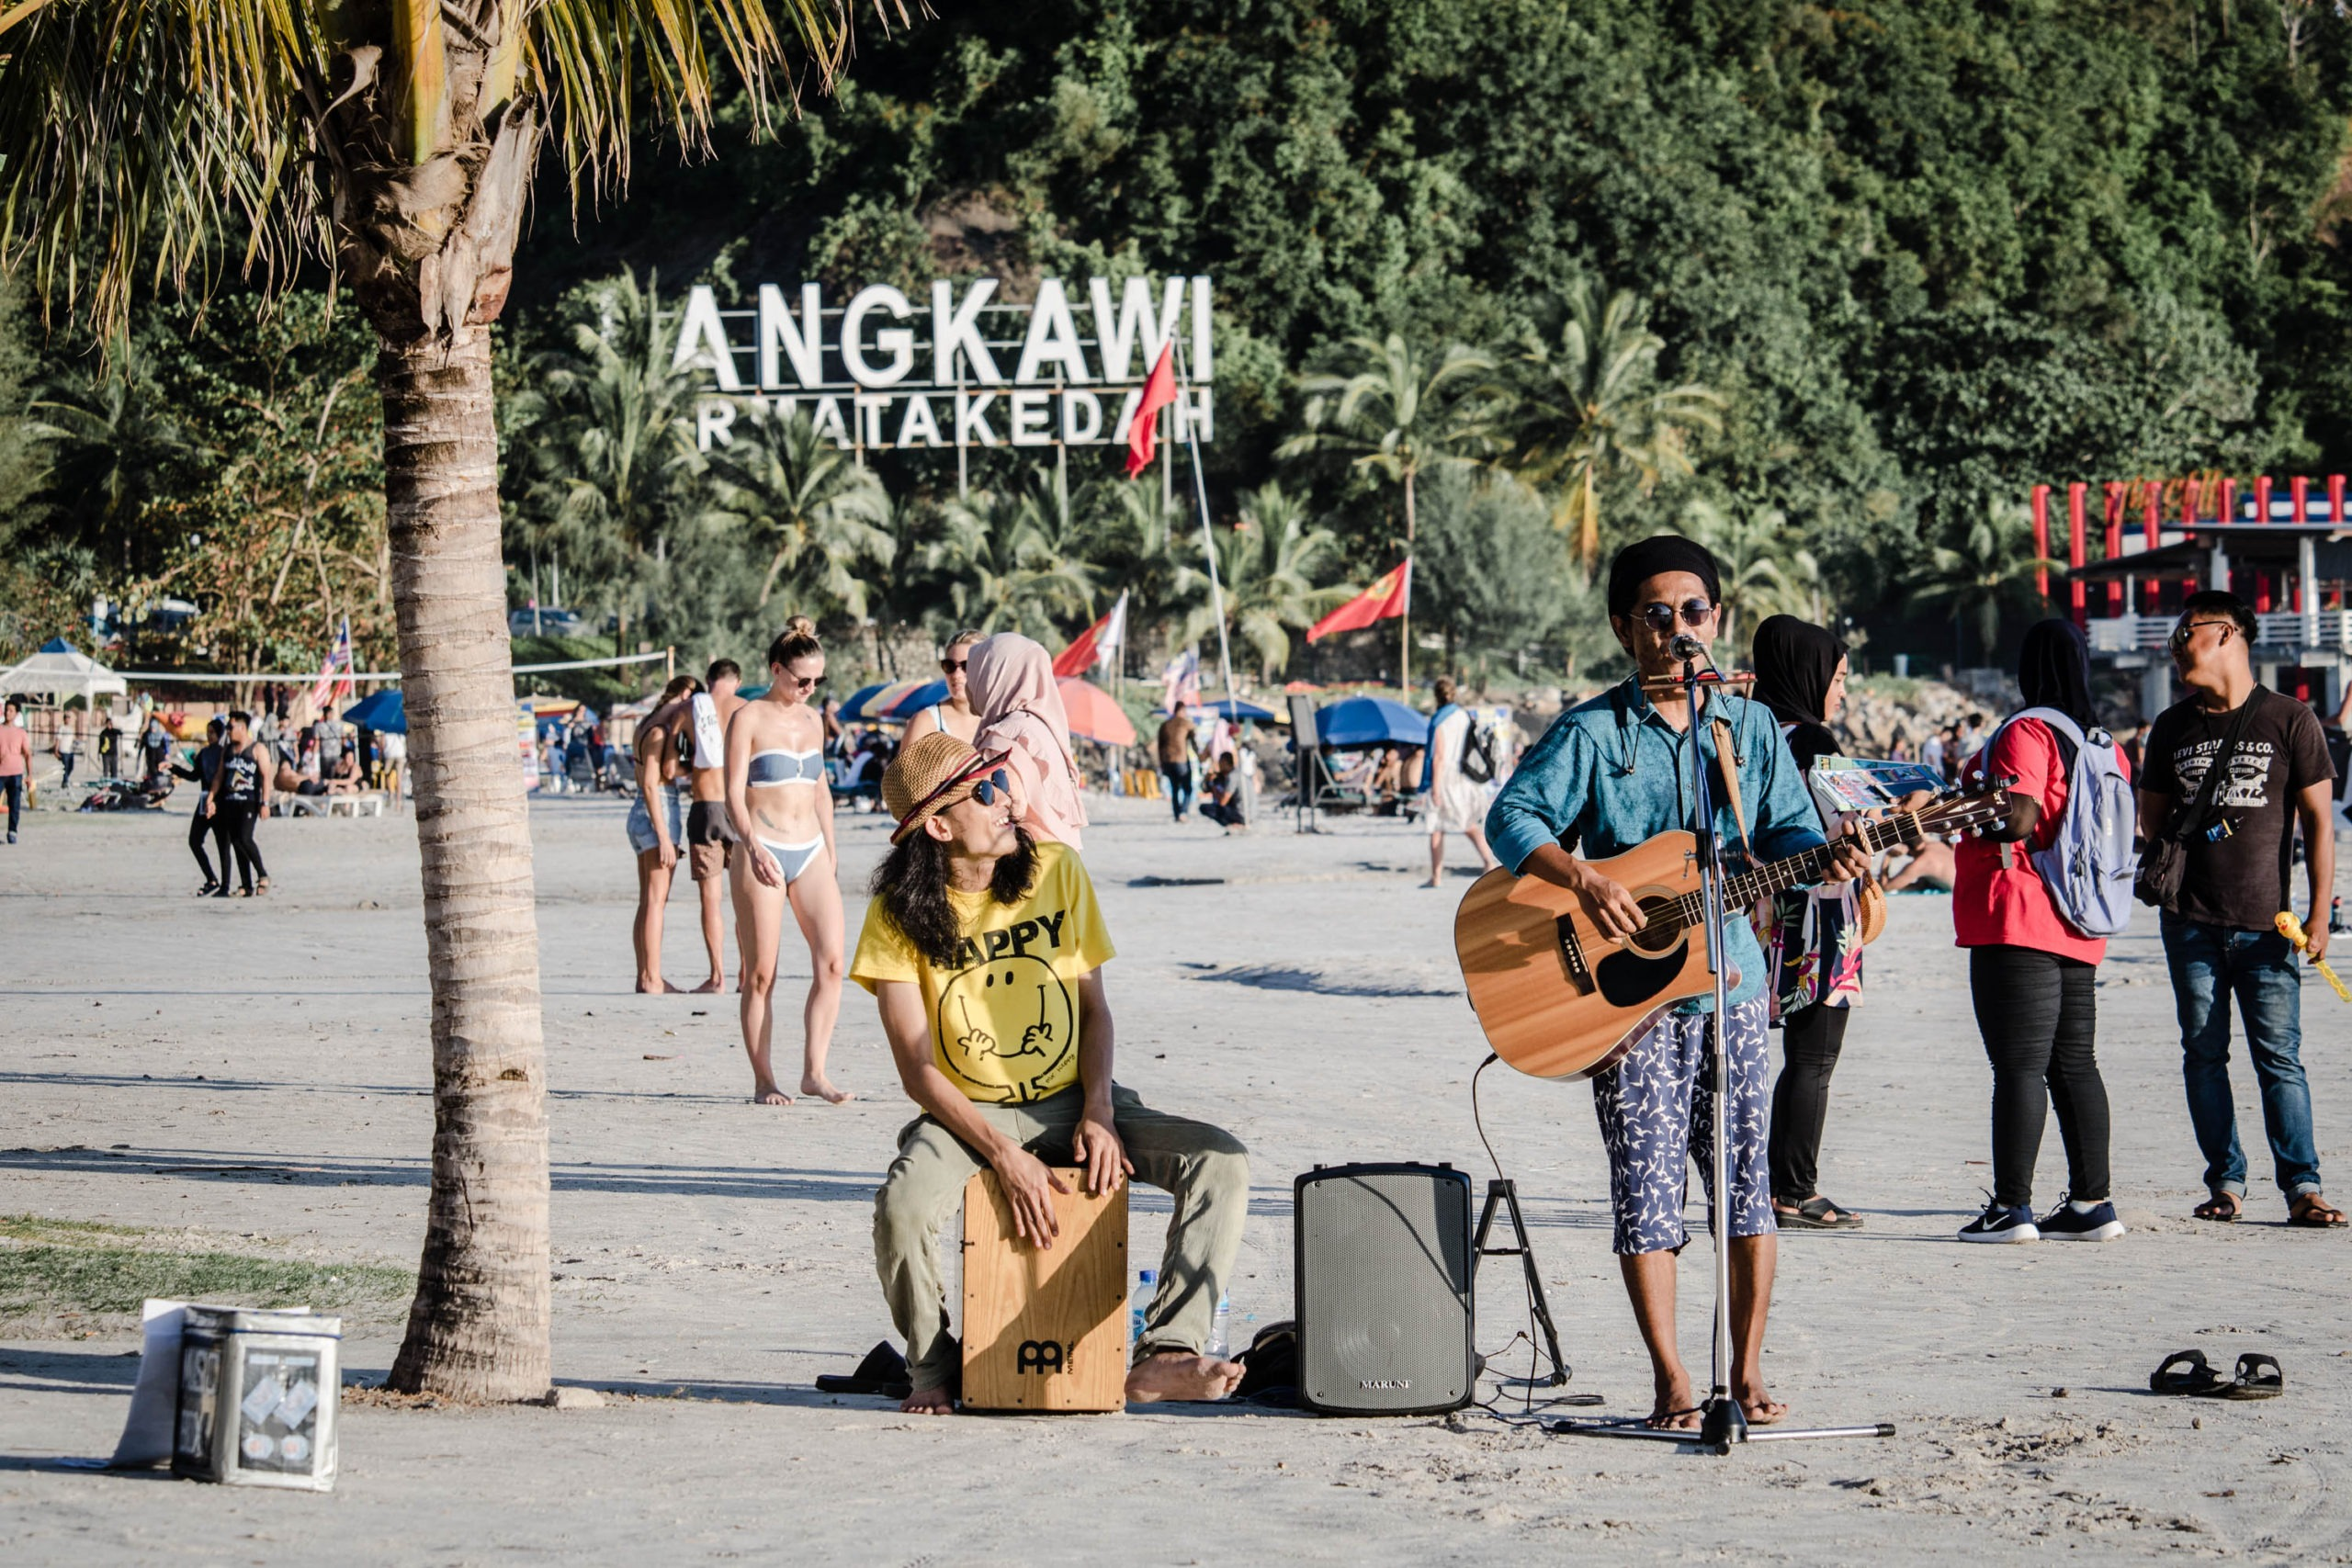 2 Days in Langkawi on a Budget